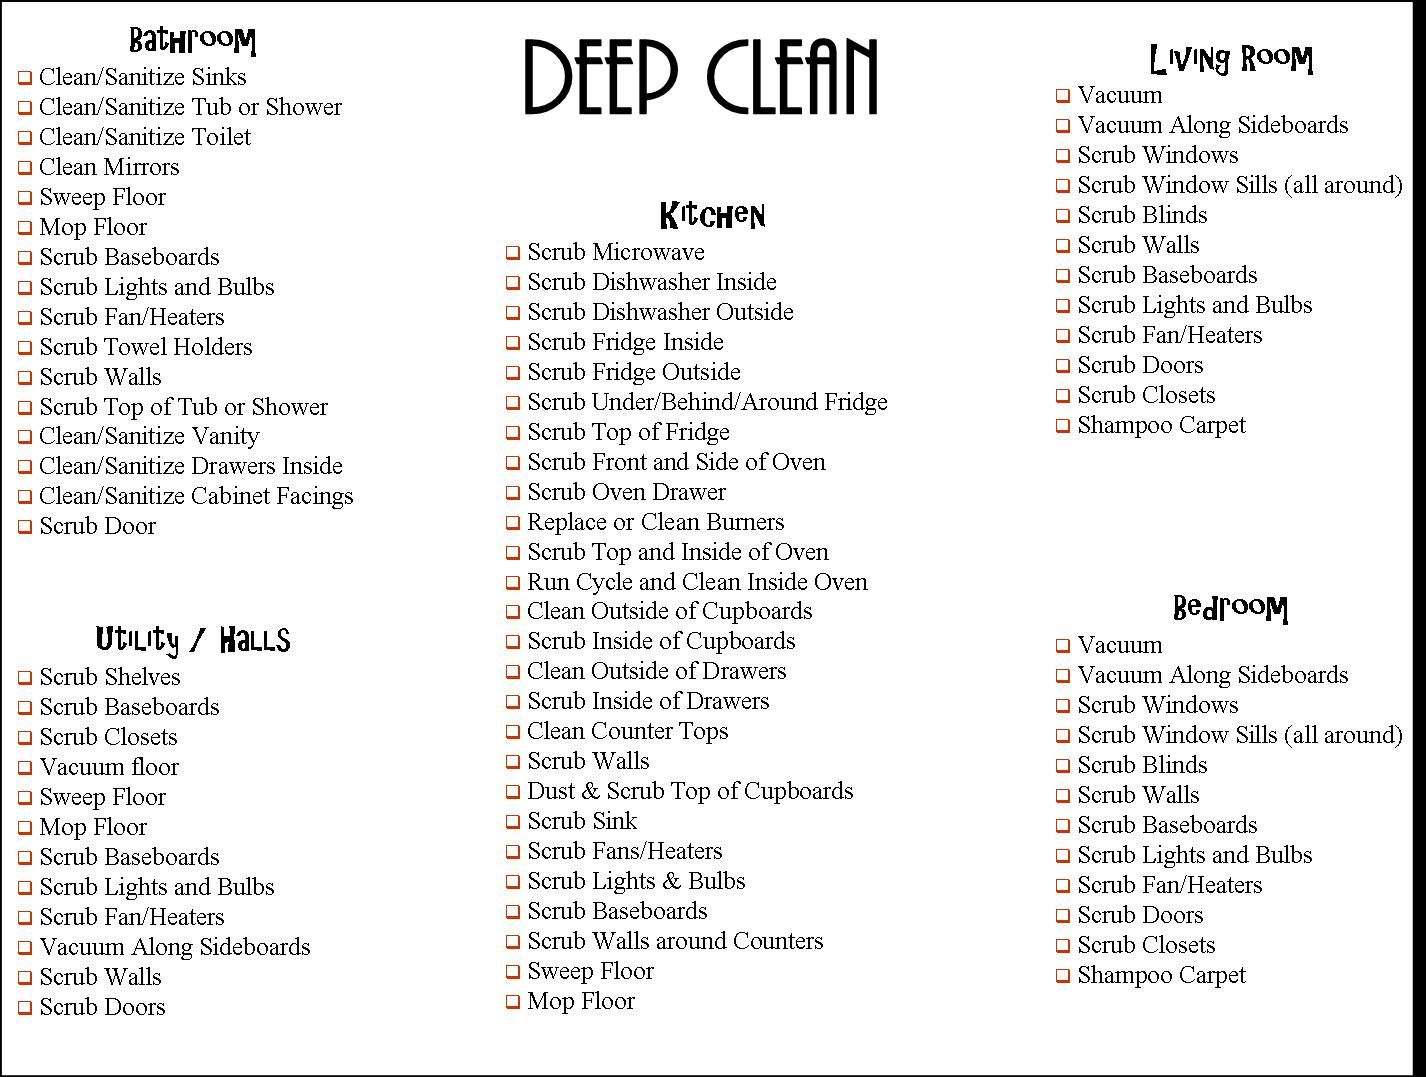 Bathroom cleaning checklist sheet pdf just b cause for Bathroom deep cleaning